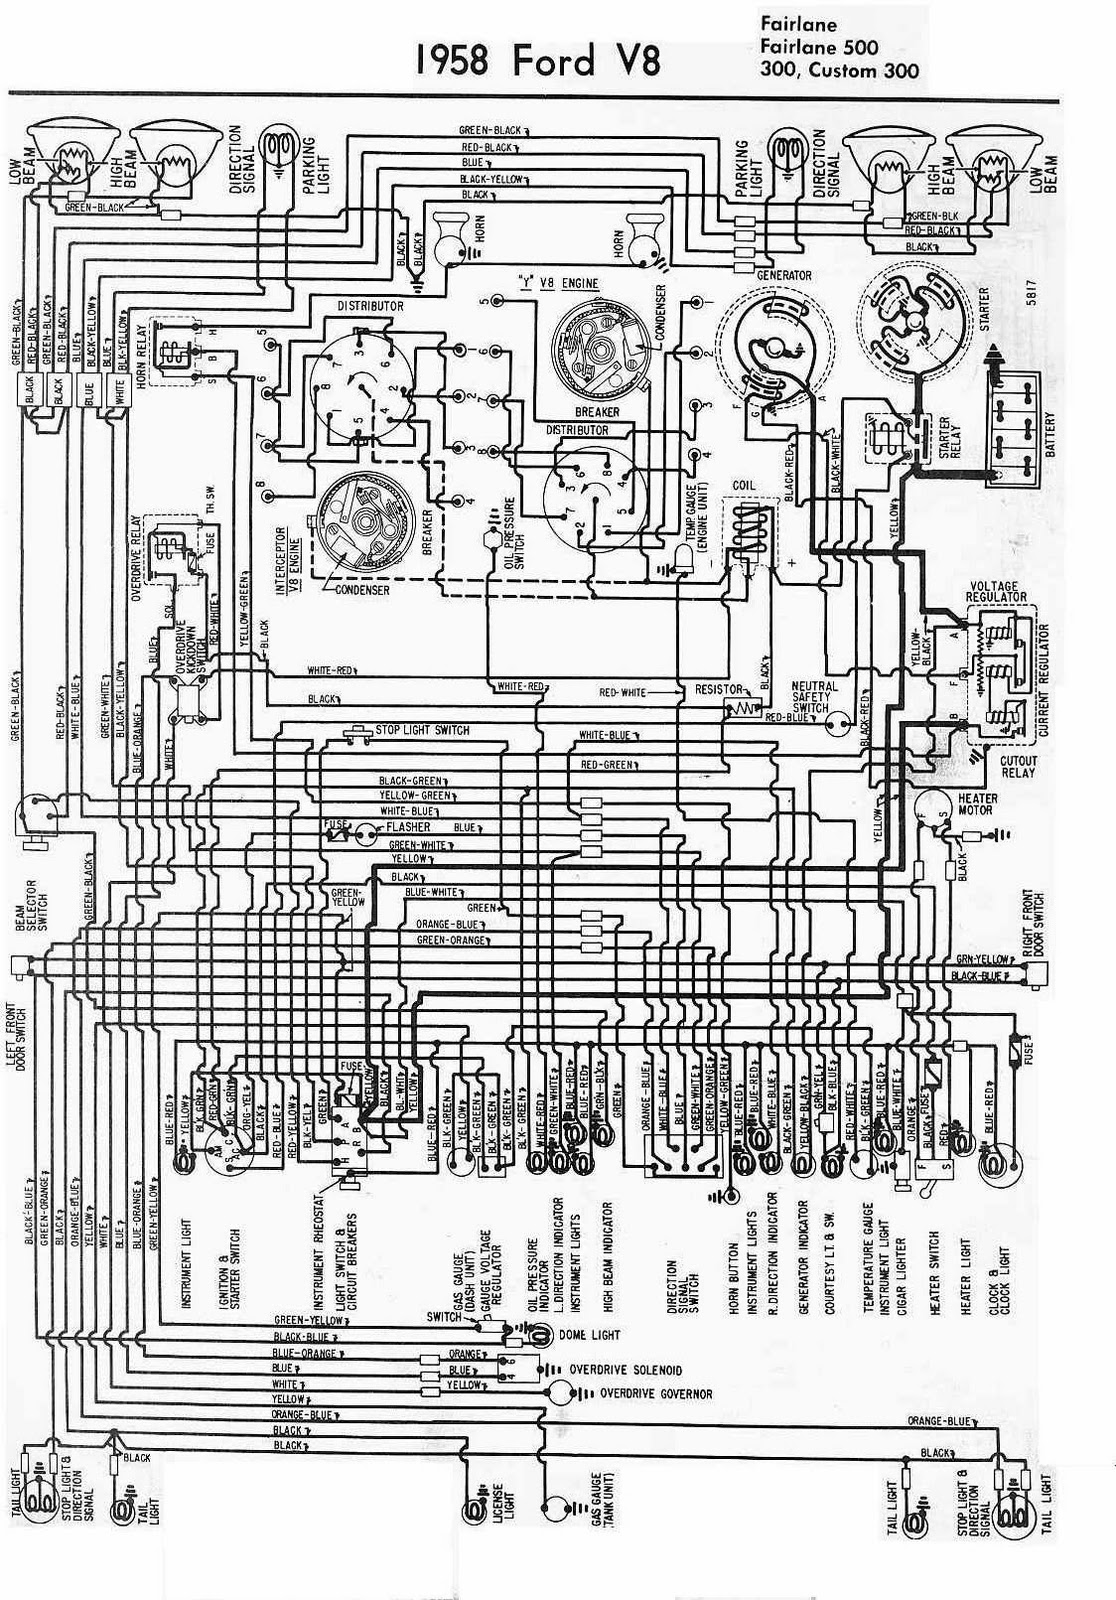 1960 corvette wiring diagram 17 cdk paulking nl \u2022 Ford Generator Wiring Diagram 63 fairlane wiring diagram wiring diagrams rh thebadflowers uk 1960 chevy wiring diagram 1960 corvette starter